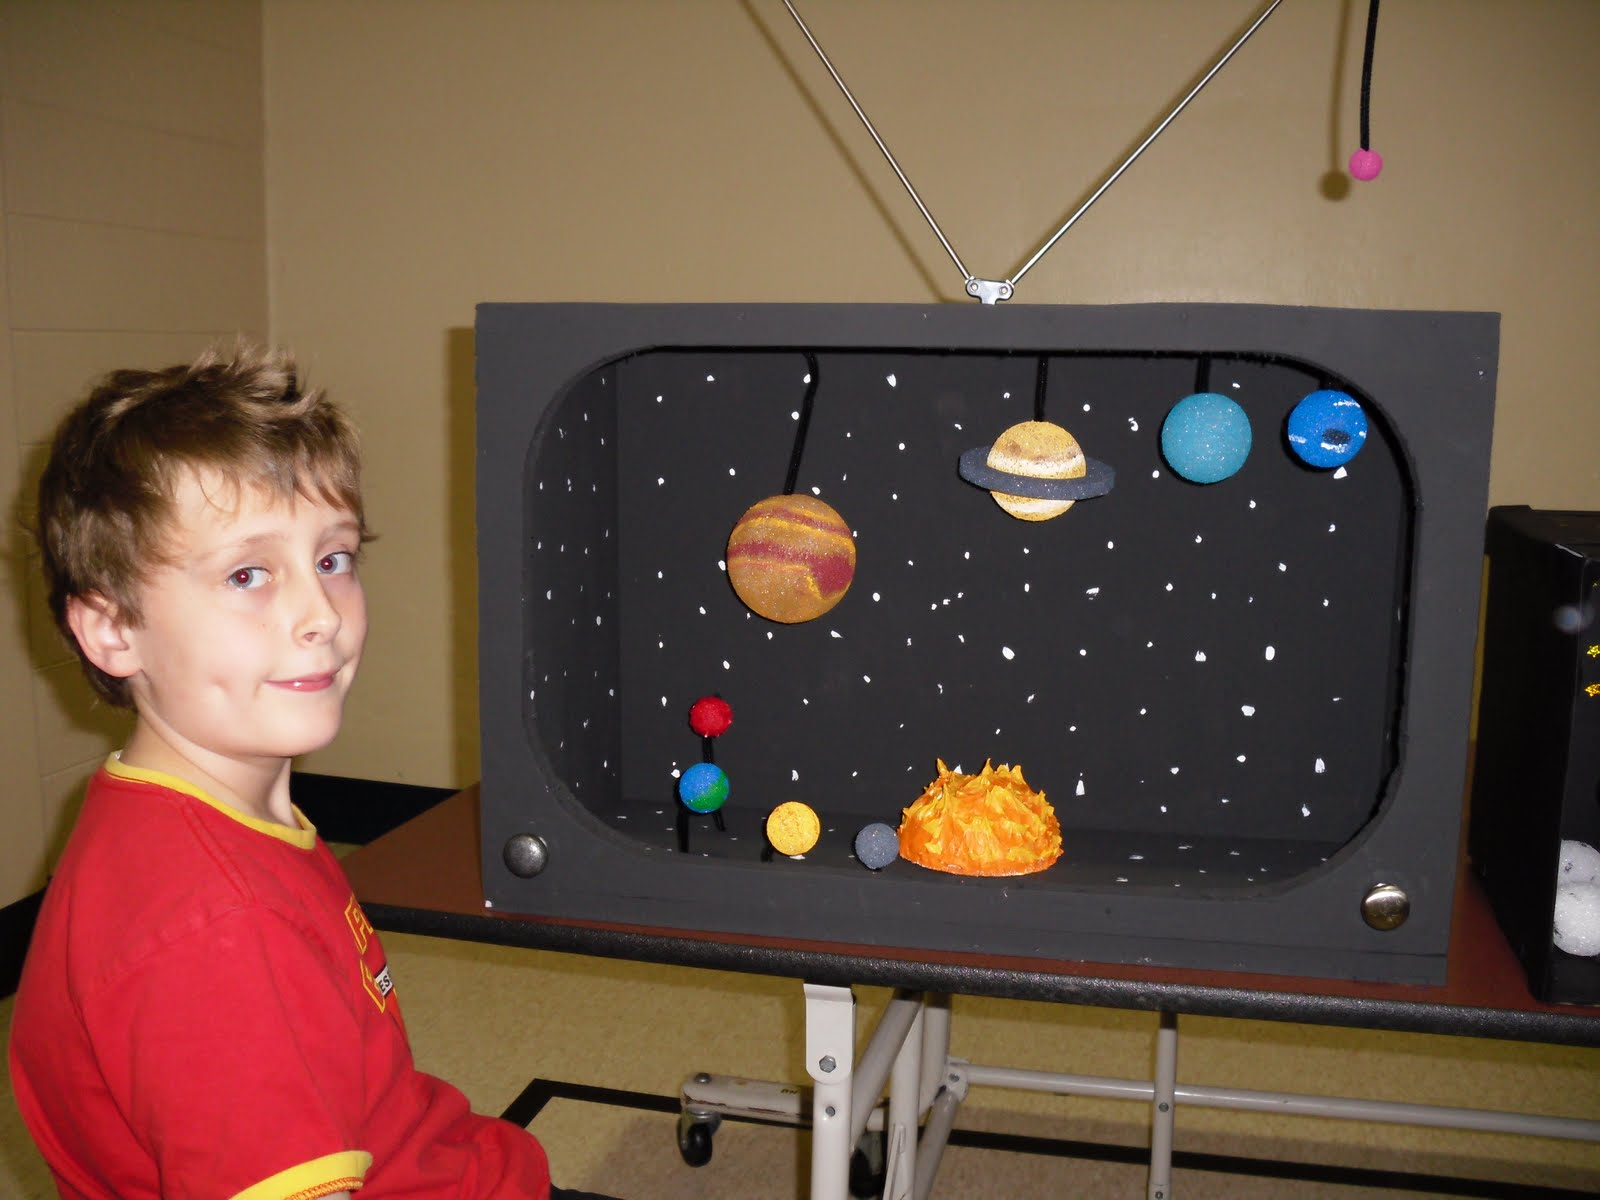 solar system projects for 3rd grade - photo #37